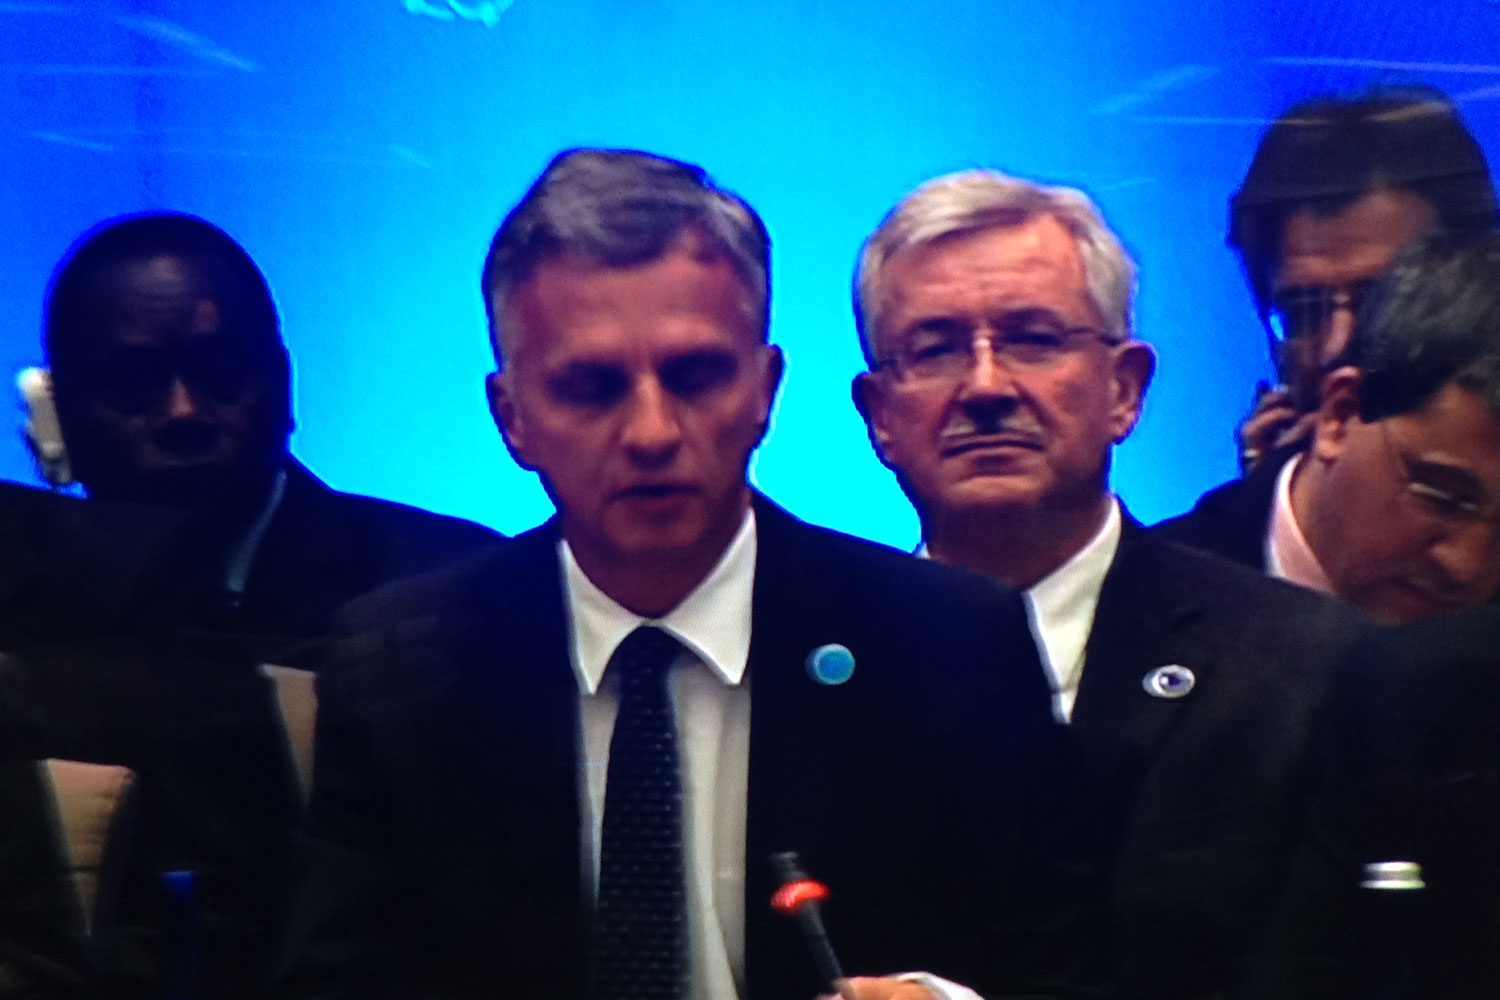 Federal Councilor Didier Burkhalter speaking at the Anti-Terrorist Summit in Spring 2015 in Washington DC